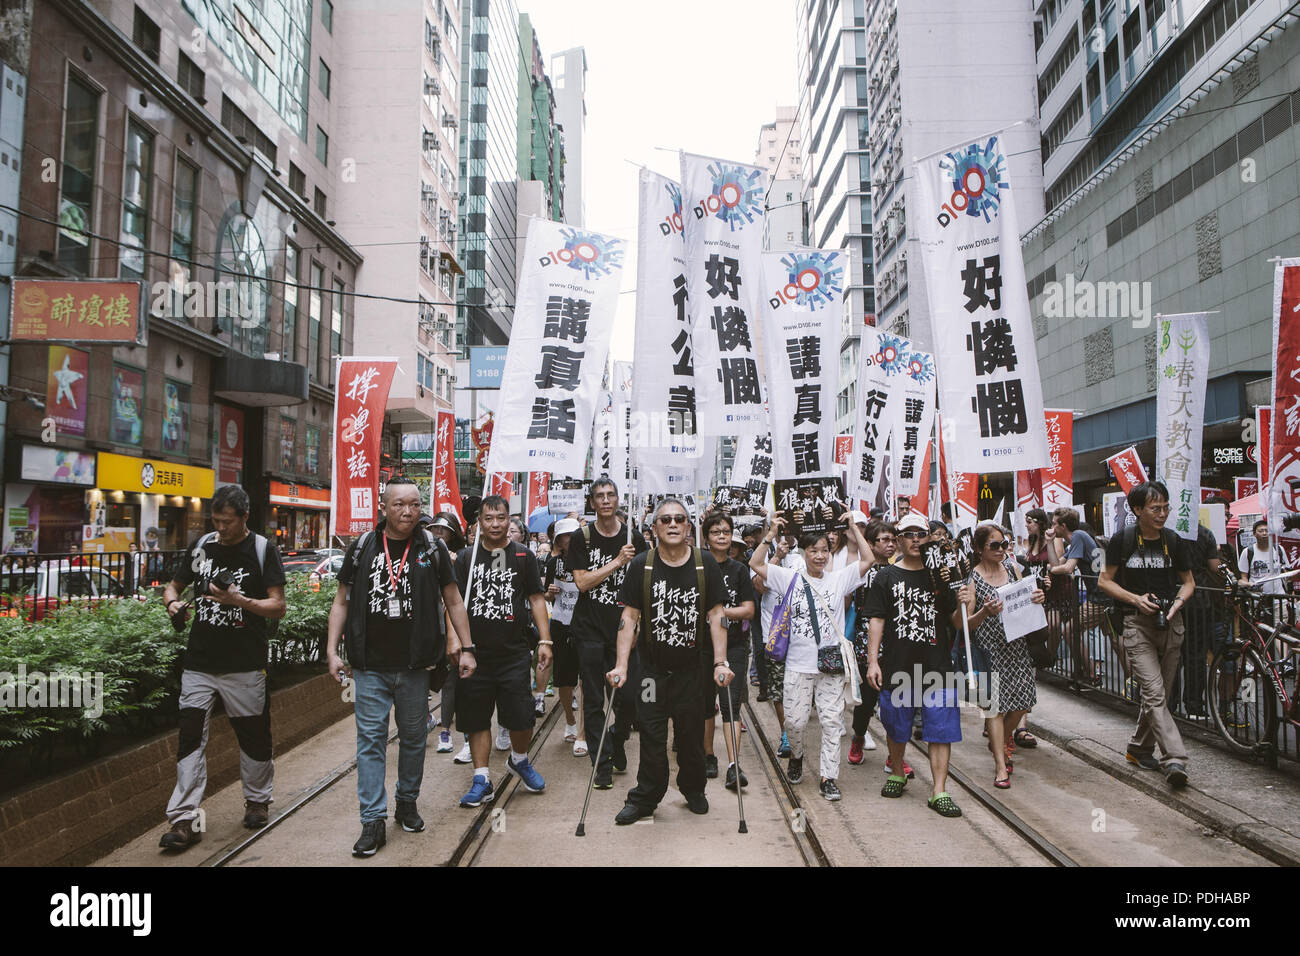 Hong Kong, Hong Kong. 1st July, 2017. Thousands of demonstrators seen marching through the streets of Hong Kong.Thousands came together and demonstrated to mark the 20th anniversary of the Handover from Britain to China, Hong Kong's return to China on July 1st 1997. The protestors marched through sun and rain from Victoria Park to Admiralty, taking a stand on a variety of human-rights-related causes. Credit: Viola Gaskell/SOPA Images/ZUMA Wire/Alamy Live News - Stock Image